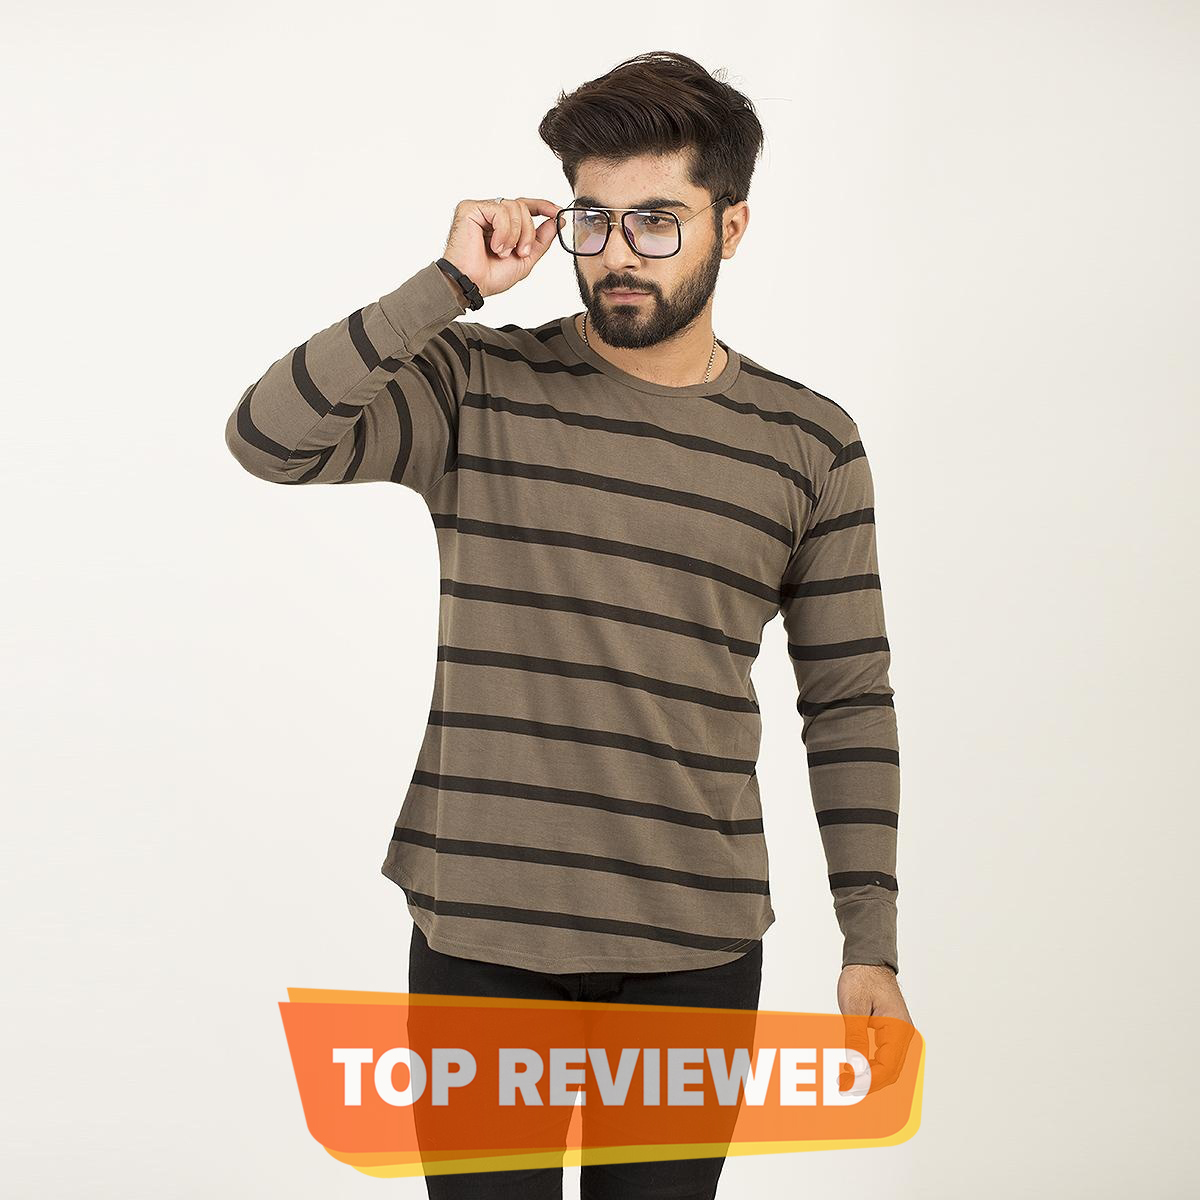 New Men's T-Shirts | Branded T-Shirts for Men in Pakistan - Daraz.pk